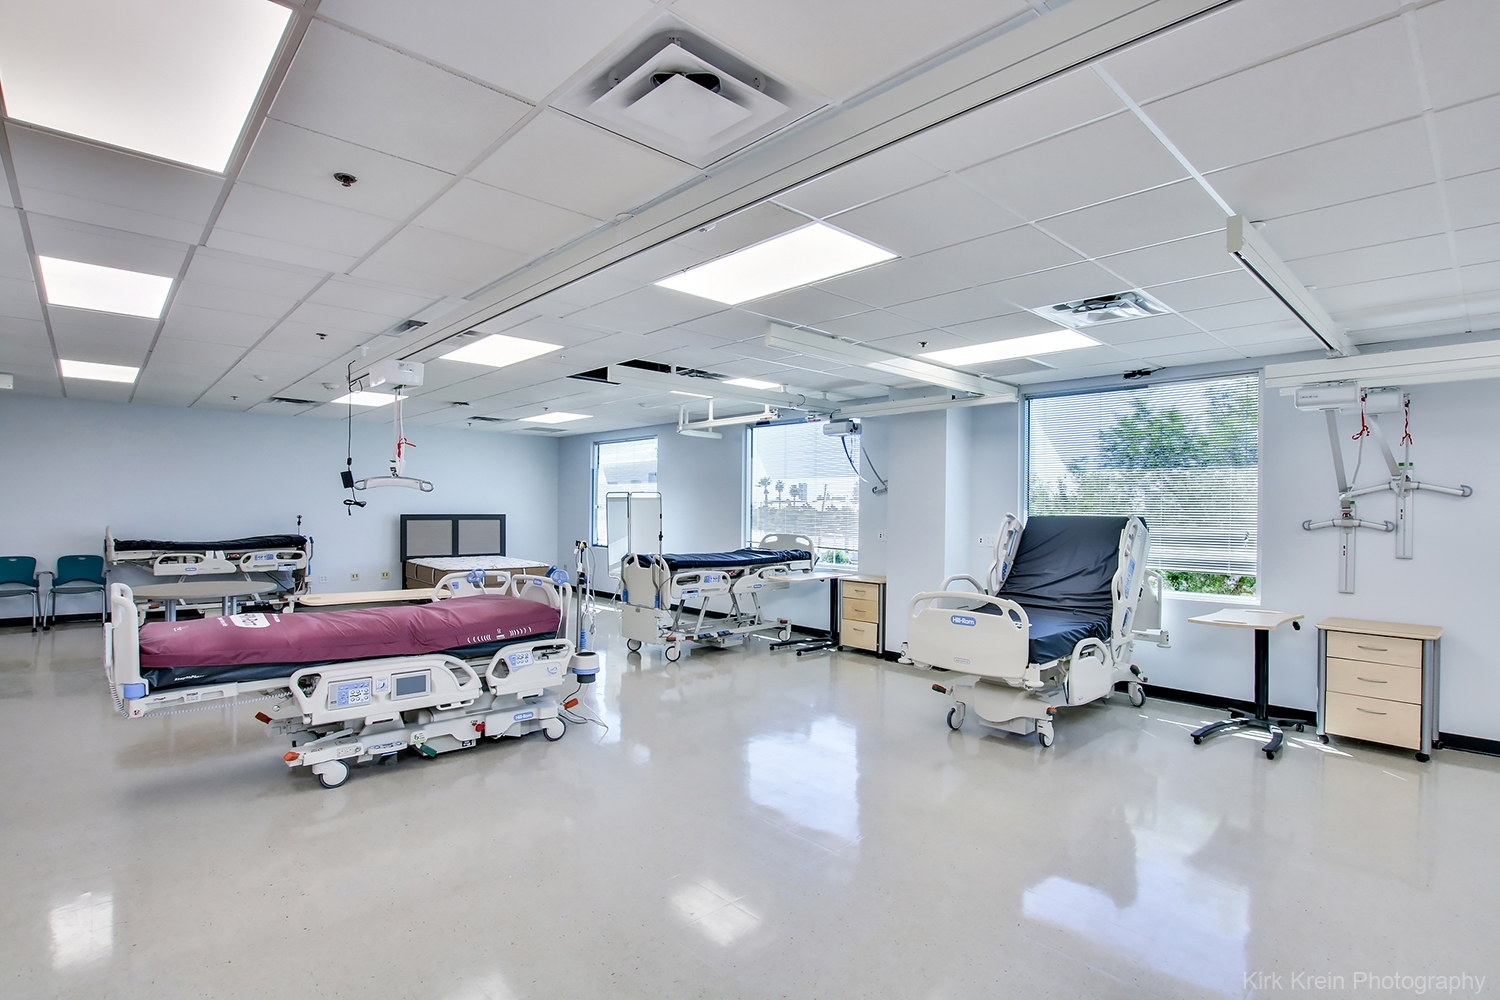 Architectural Medical Interior, Custom Commercial Real Estate Photography by Kirk Krein, Phoenix, AZ - East Valley and Beyond!